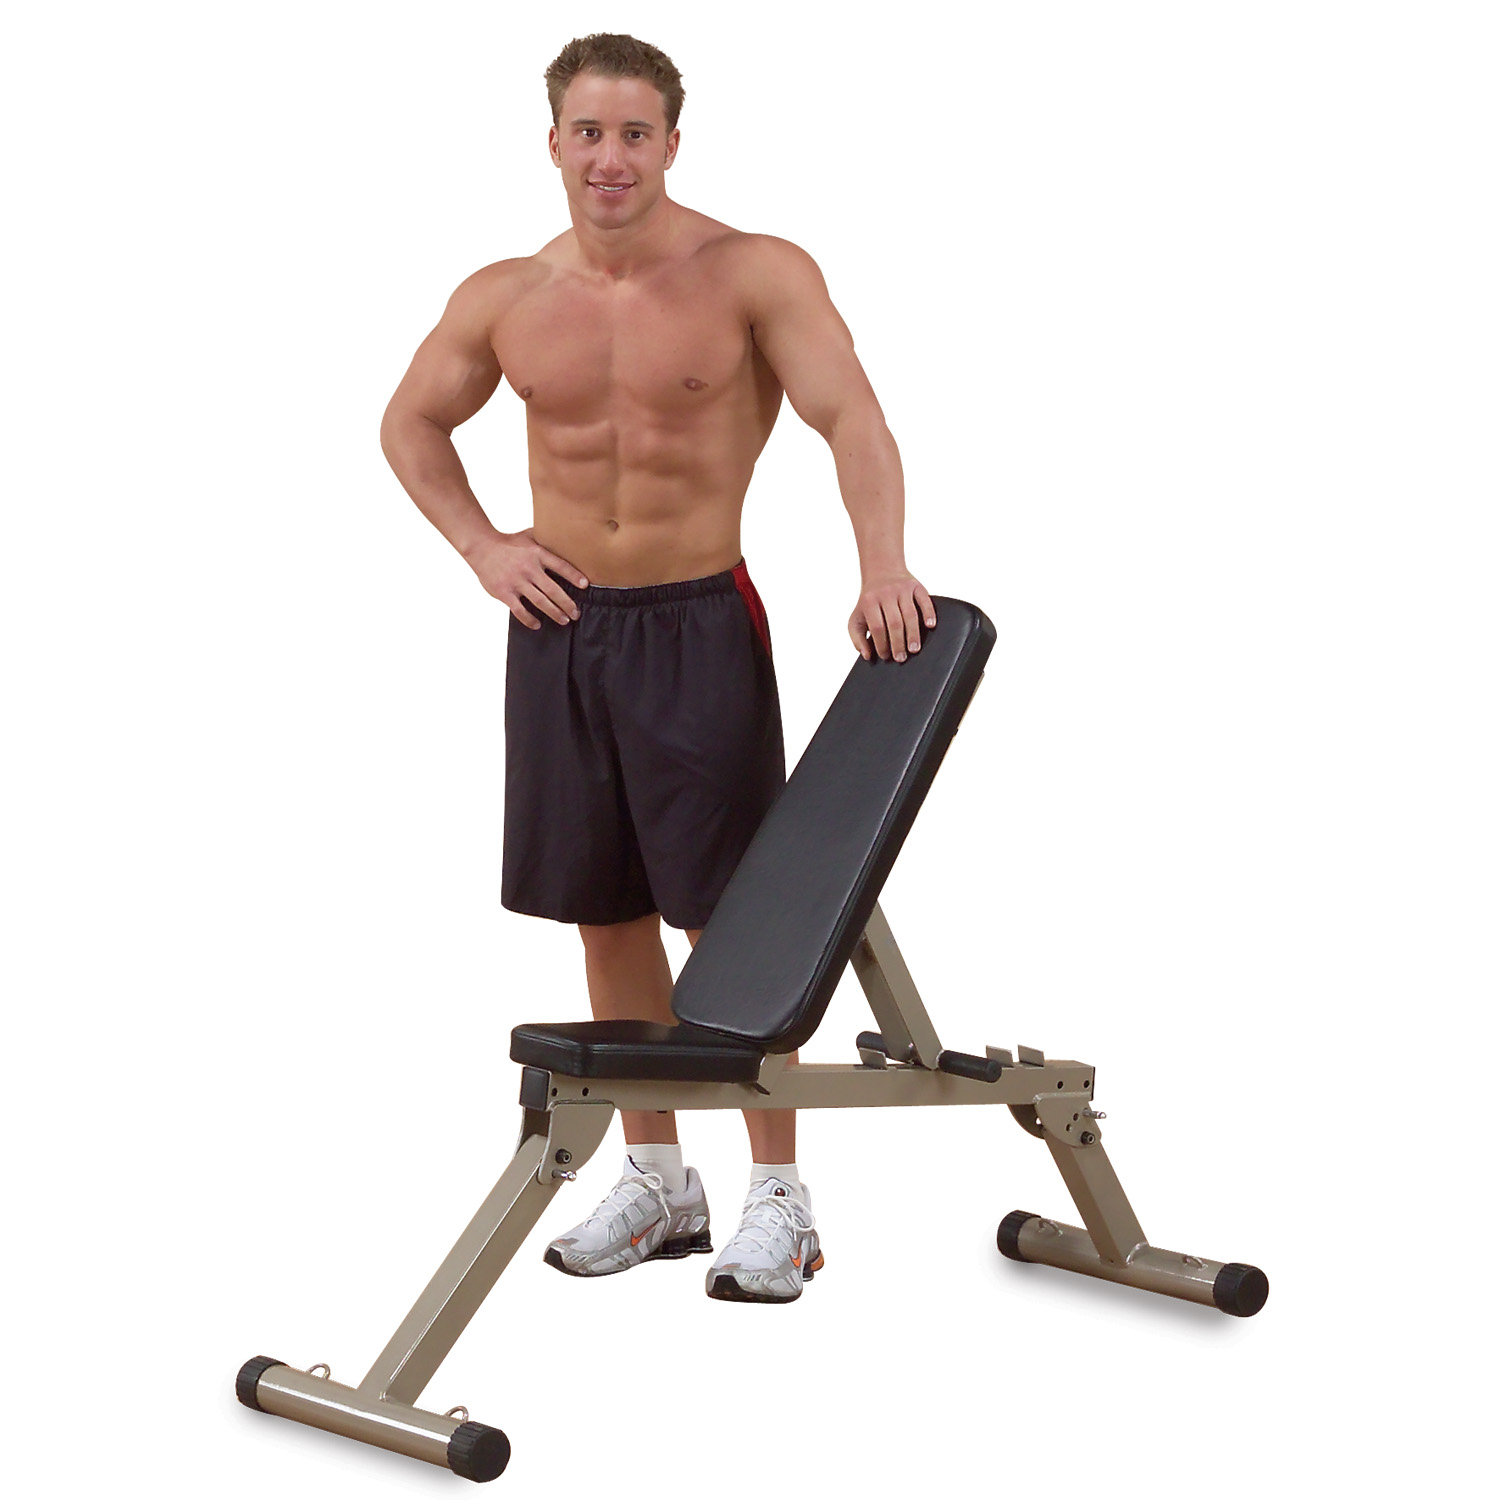 Best Fitness BFFID10 Folding Adjustable Bench